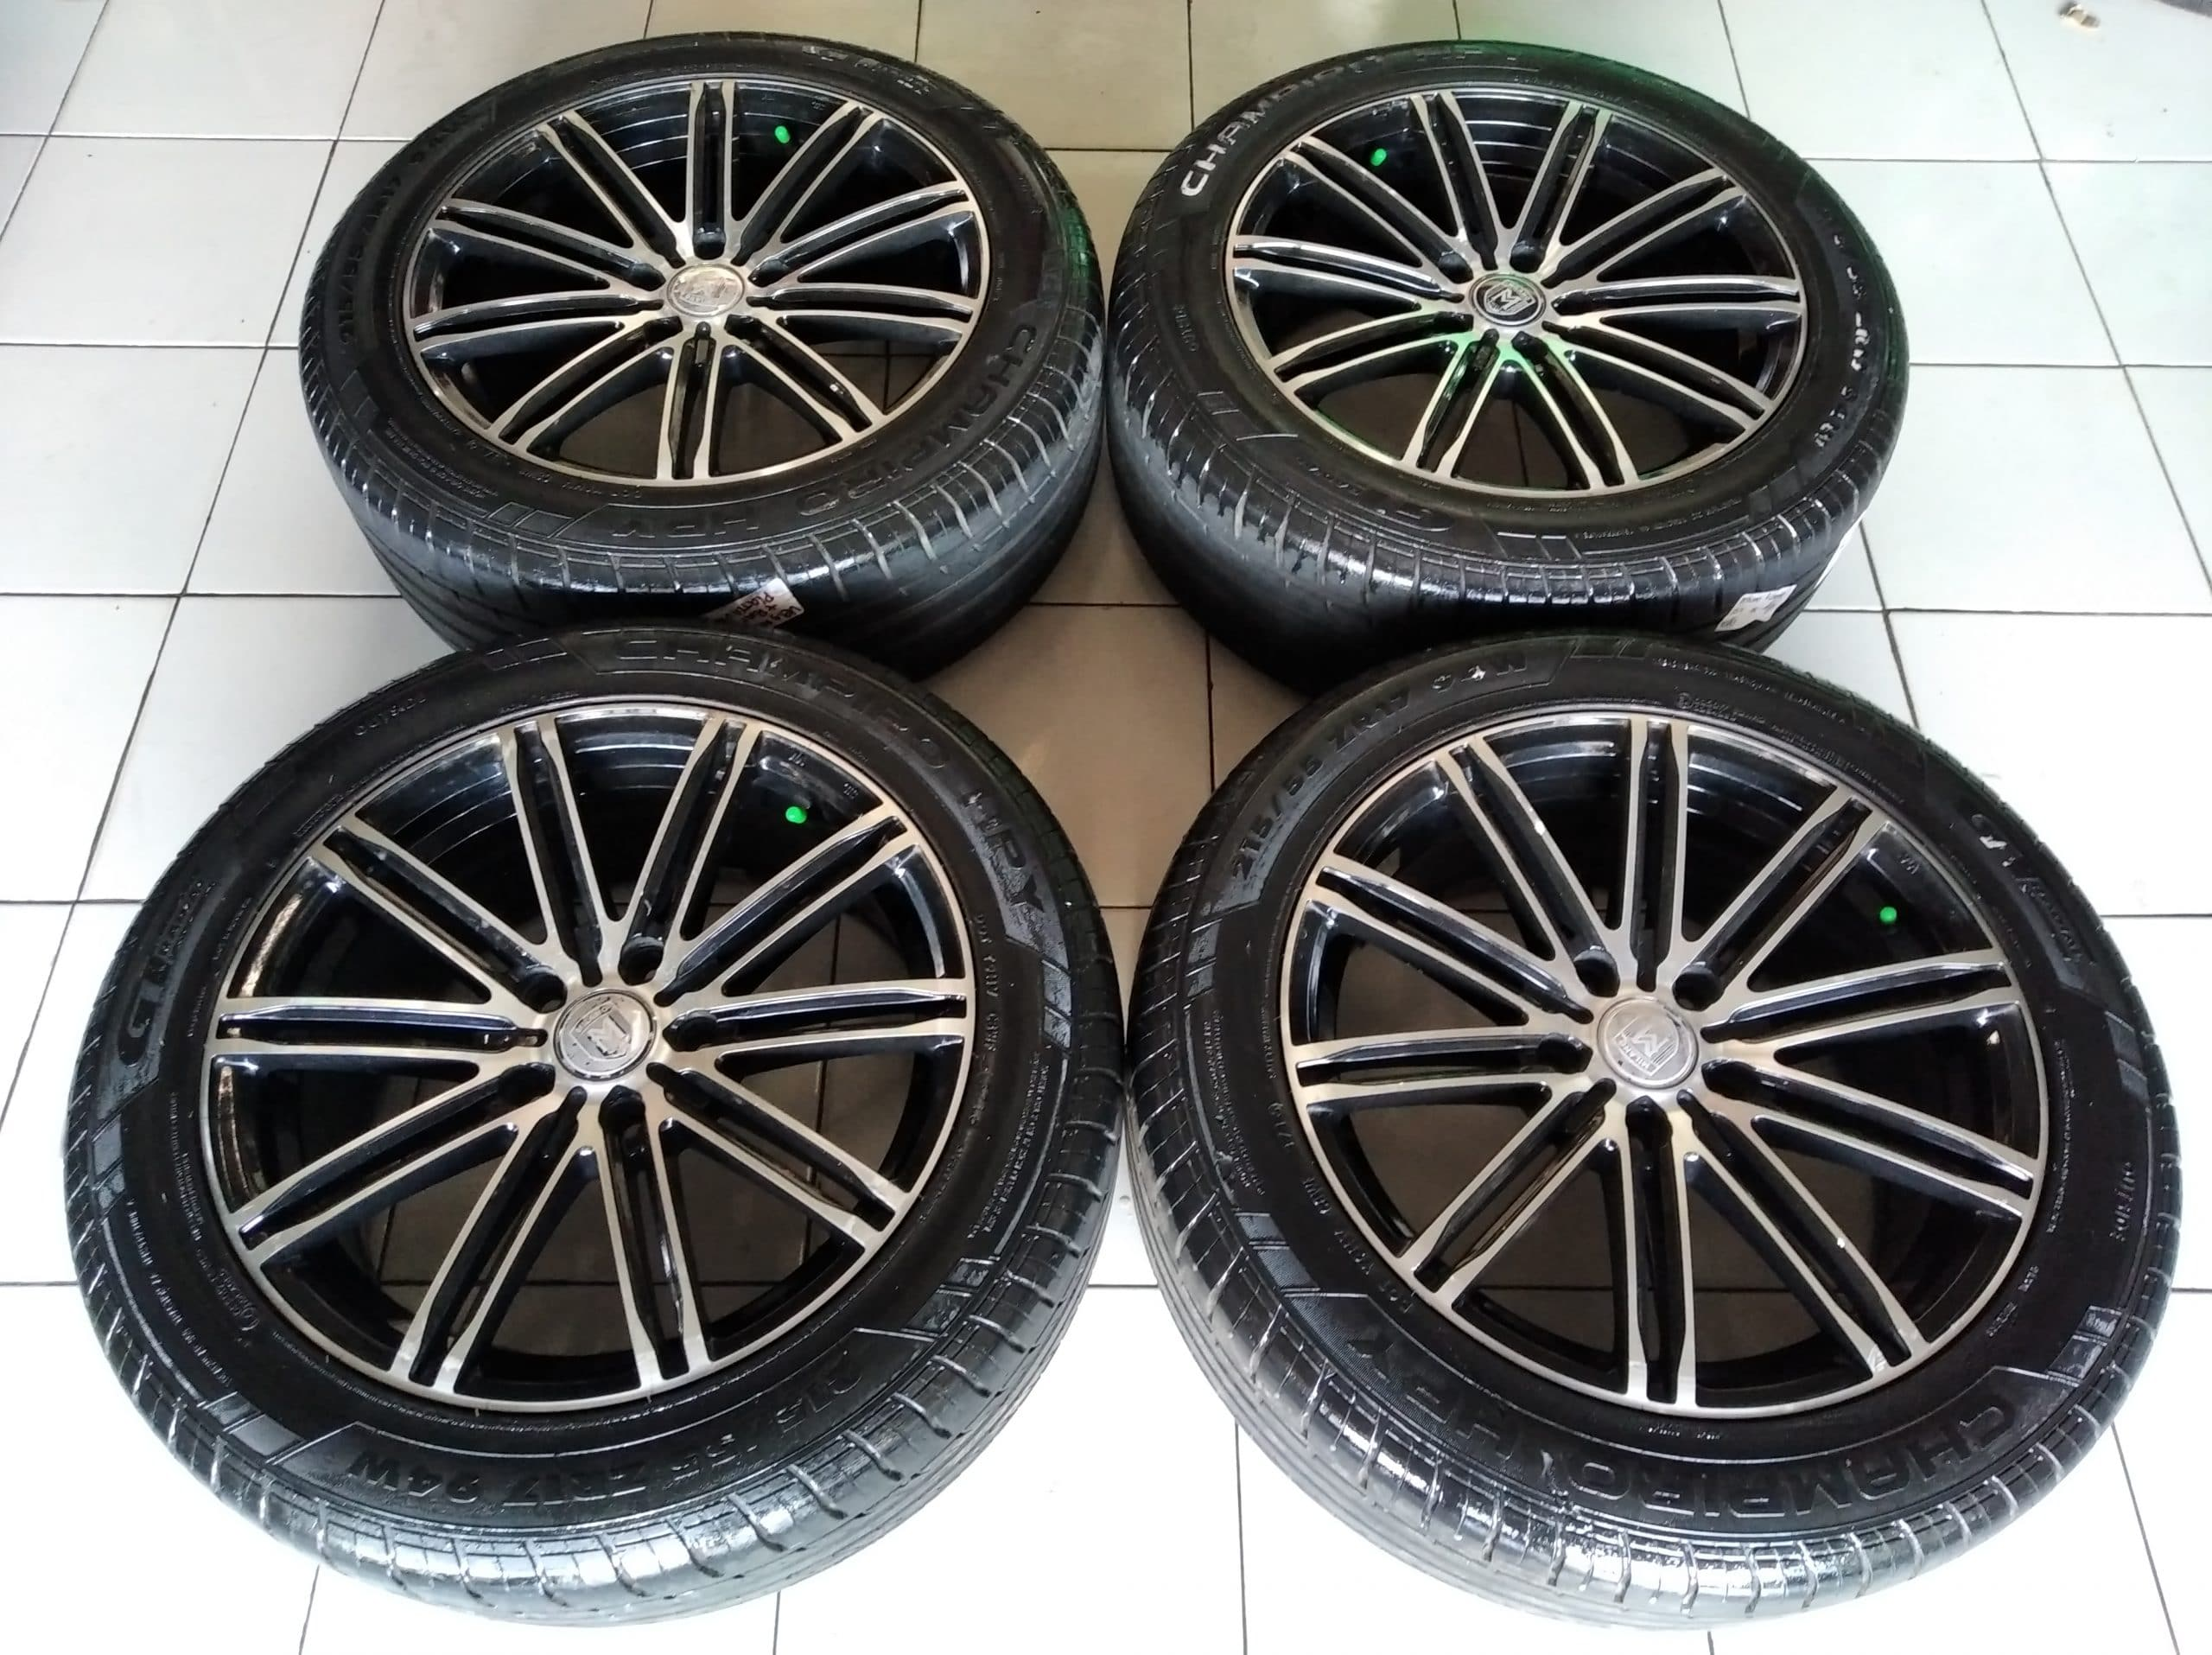 Velg Racing millano ring 17 plus ban